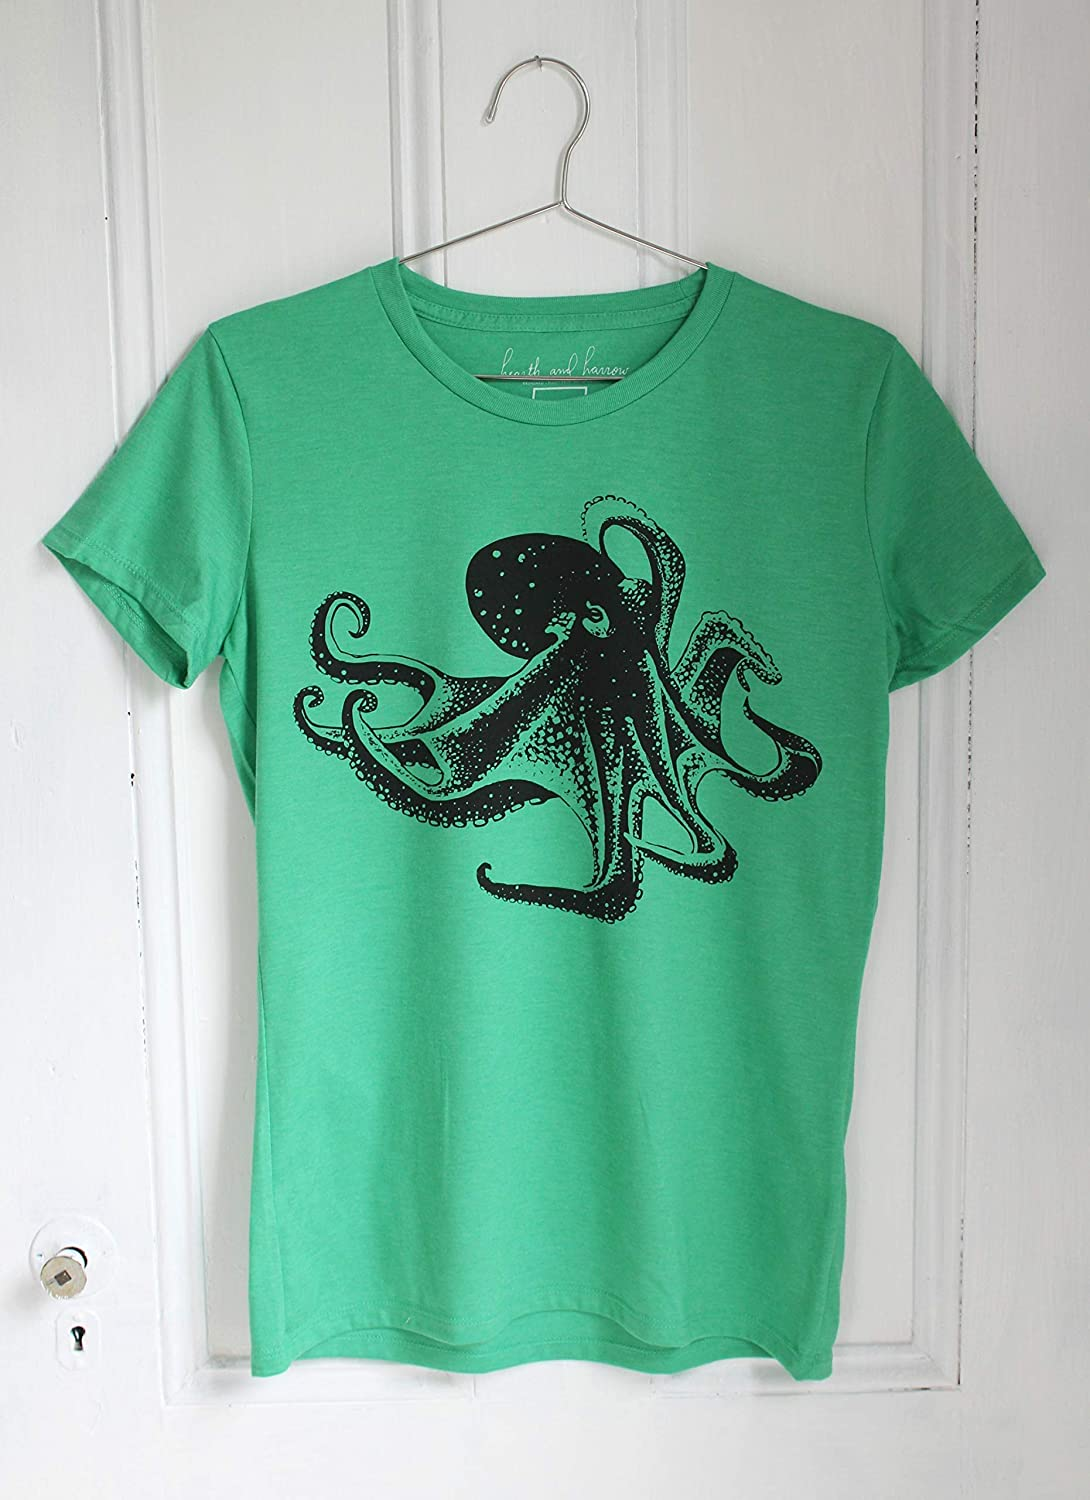 Octopus Workout T-Shirt Cute Smiling Jellyfish Lady T-Shirts Top T Shirt Ladies